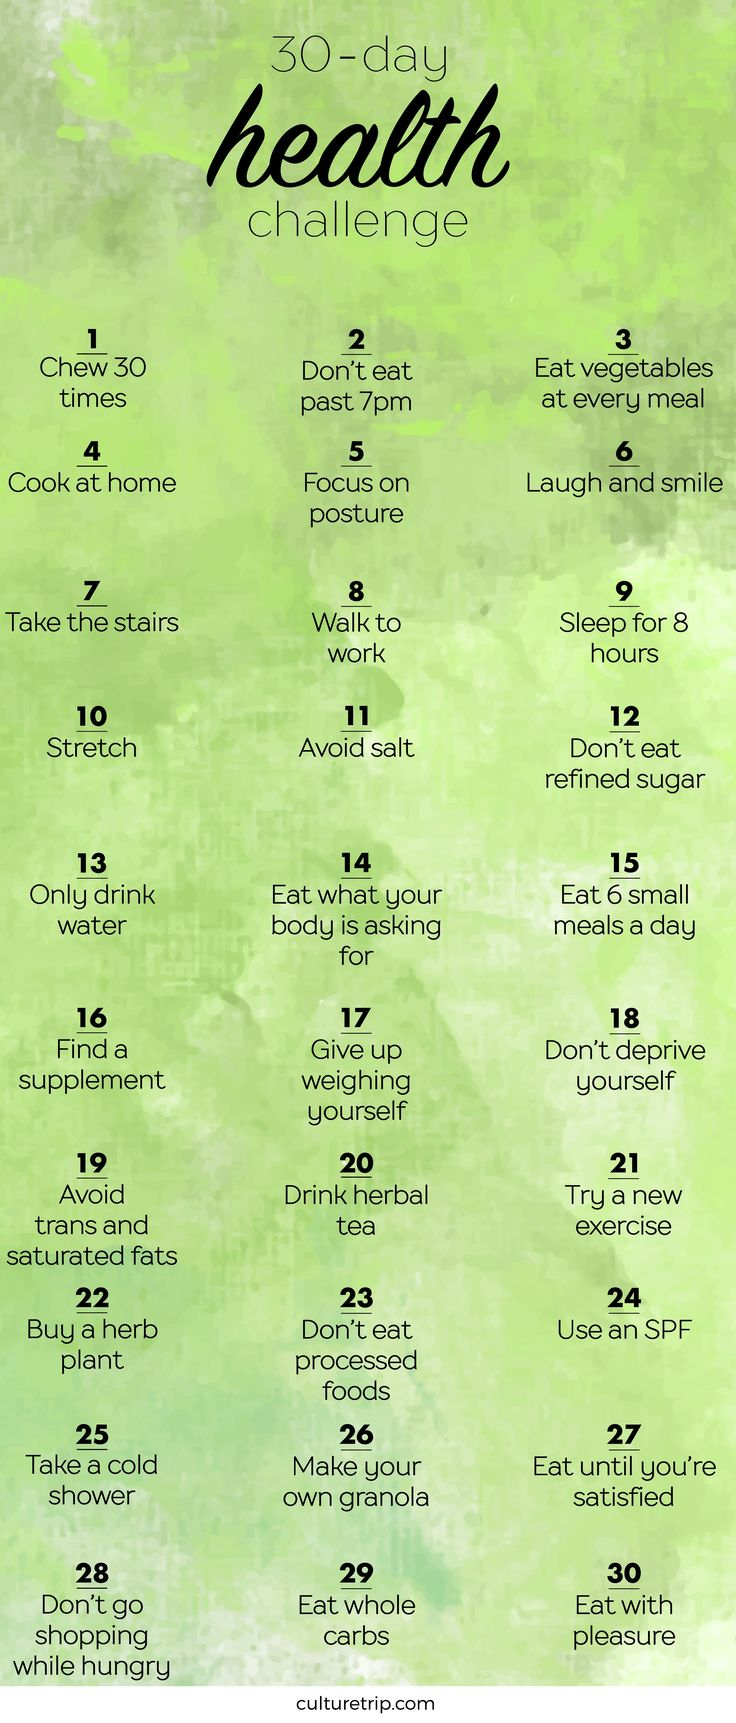 The 30-Day Health Challenge